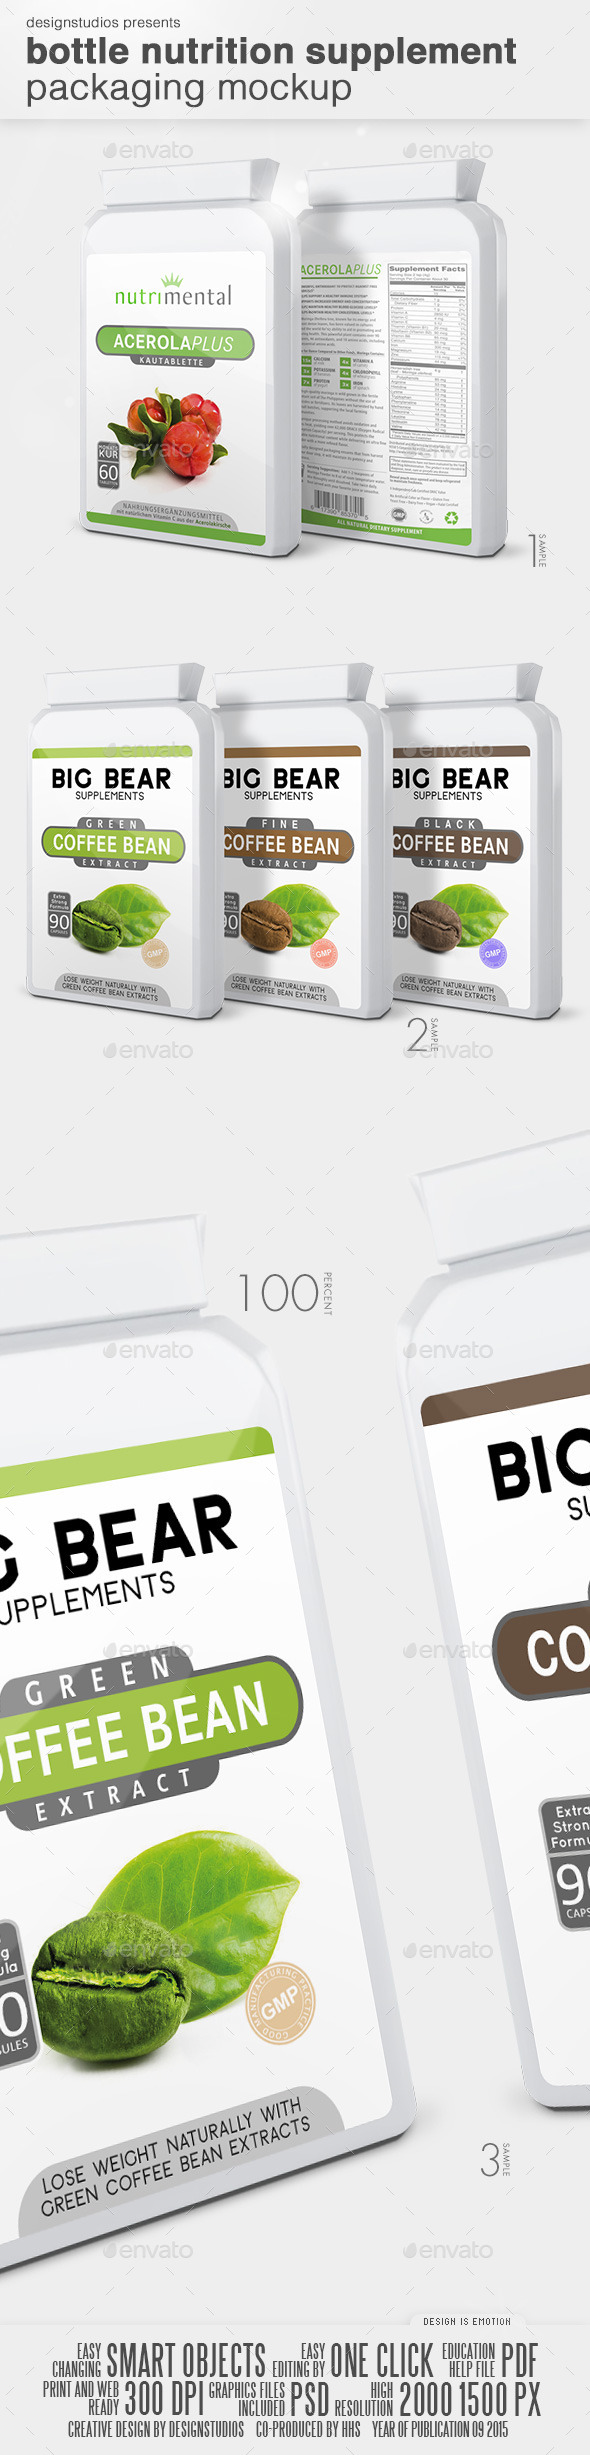 Bottle Nutrition Supplement Packaging Mock-Up